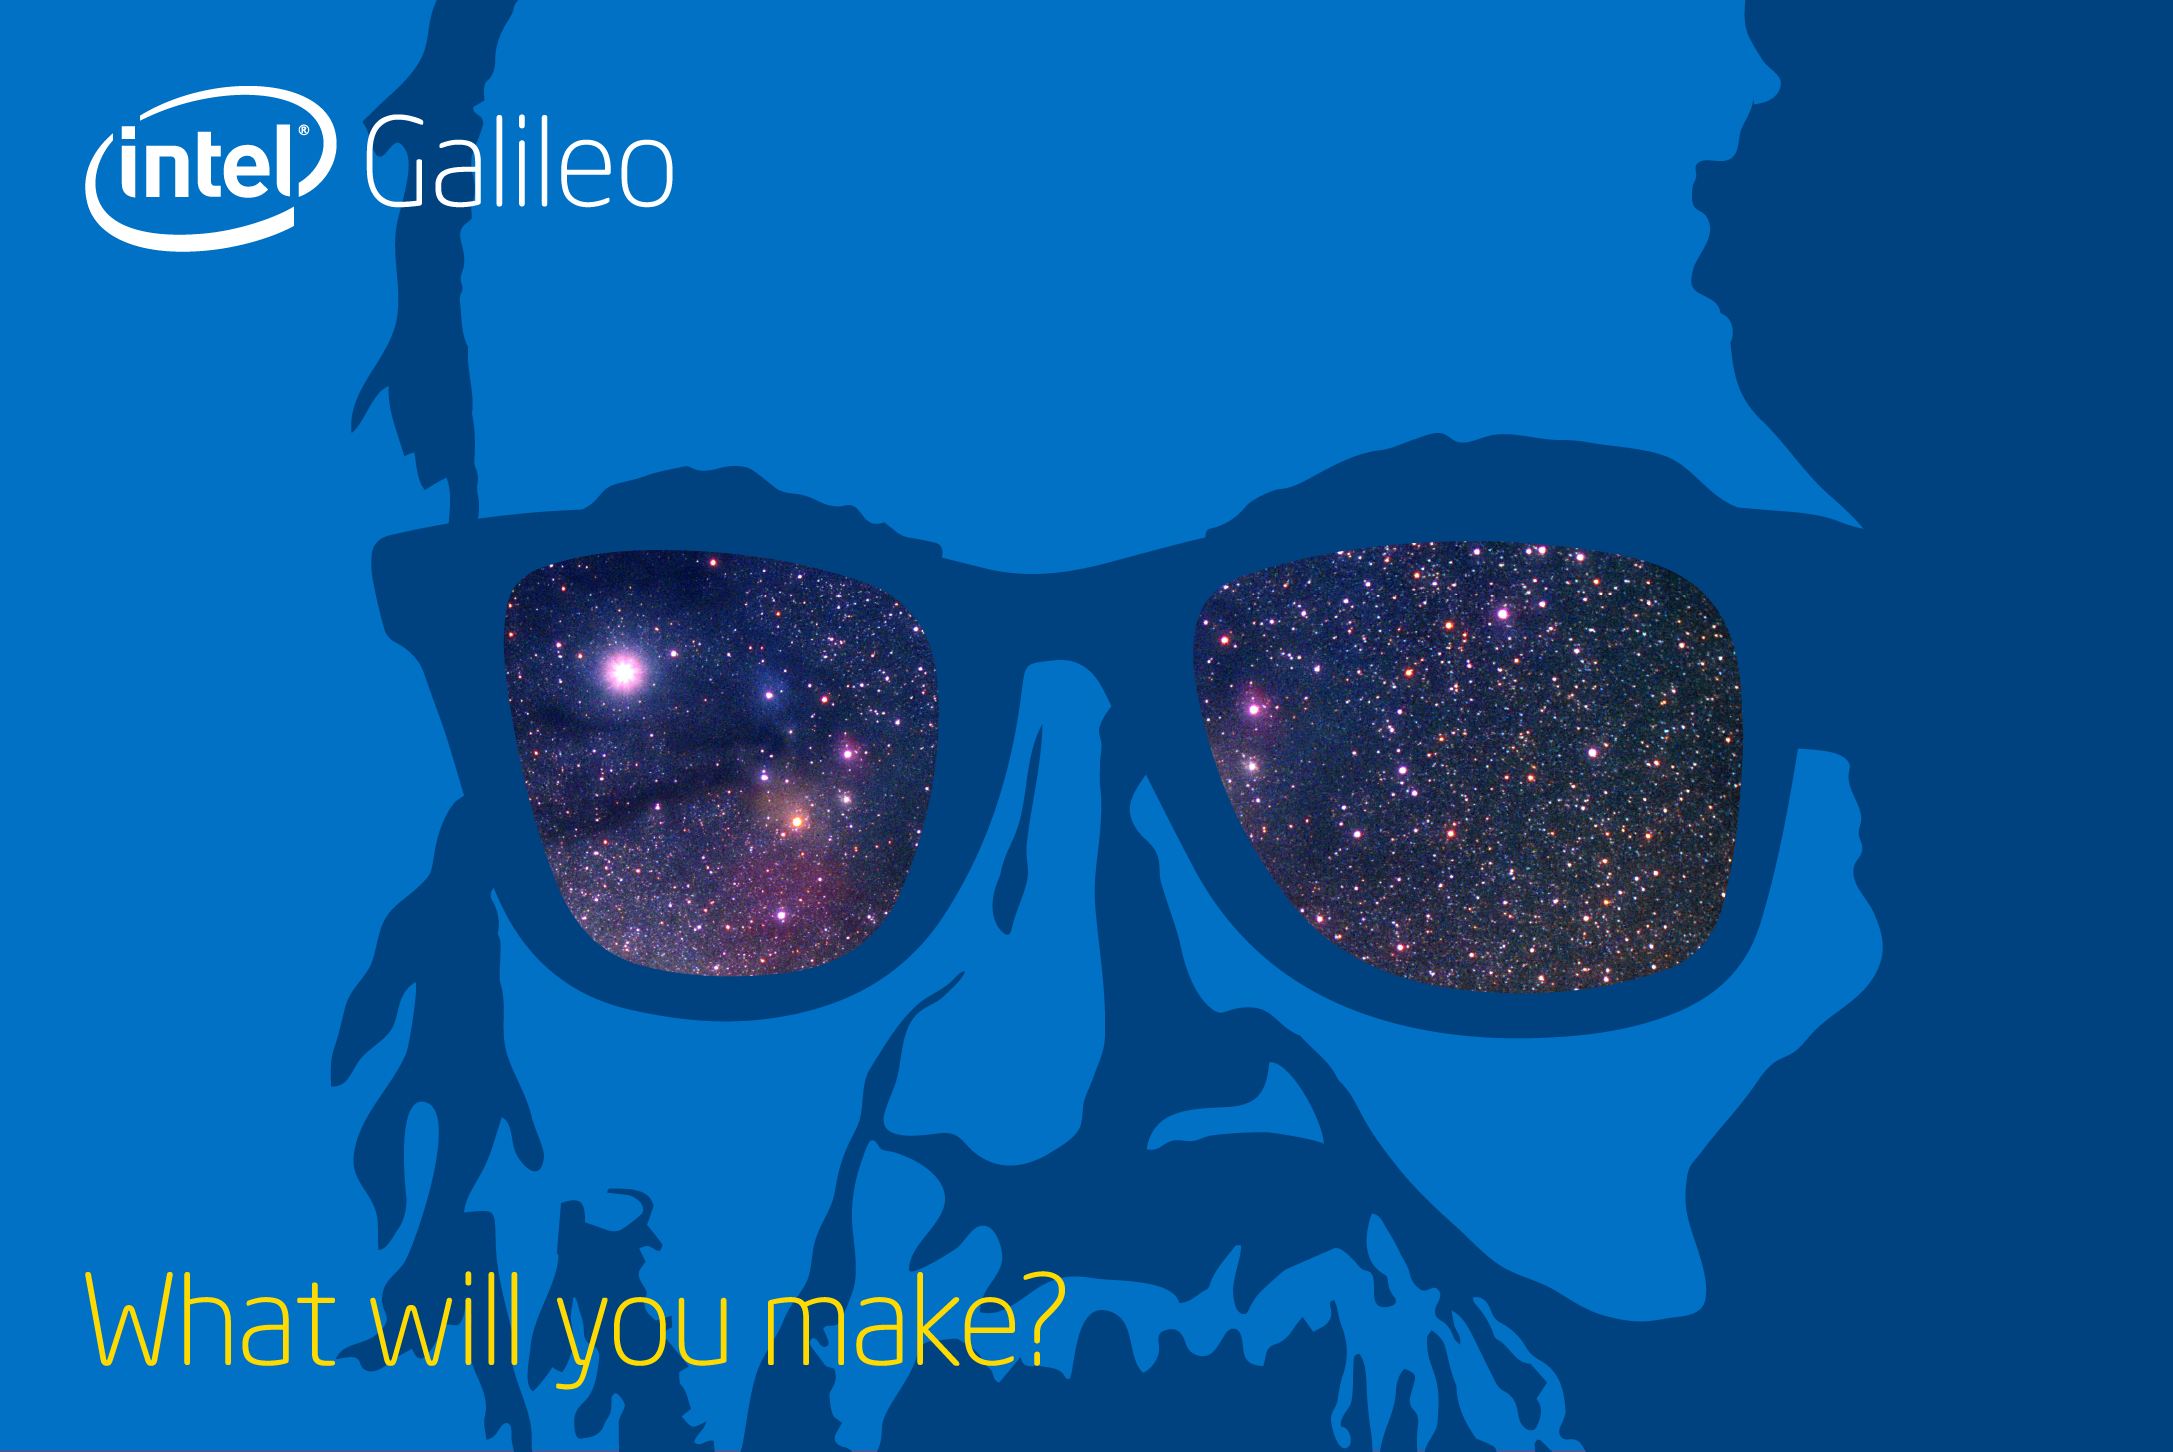 Intel & Arduino insieme con Galileo: What will you make?